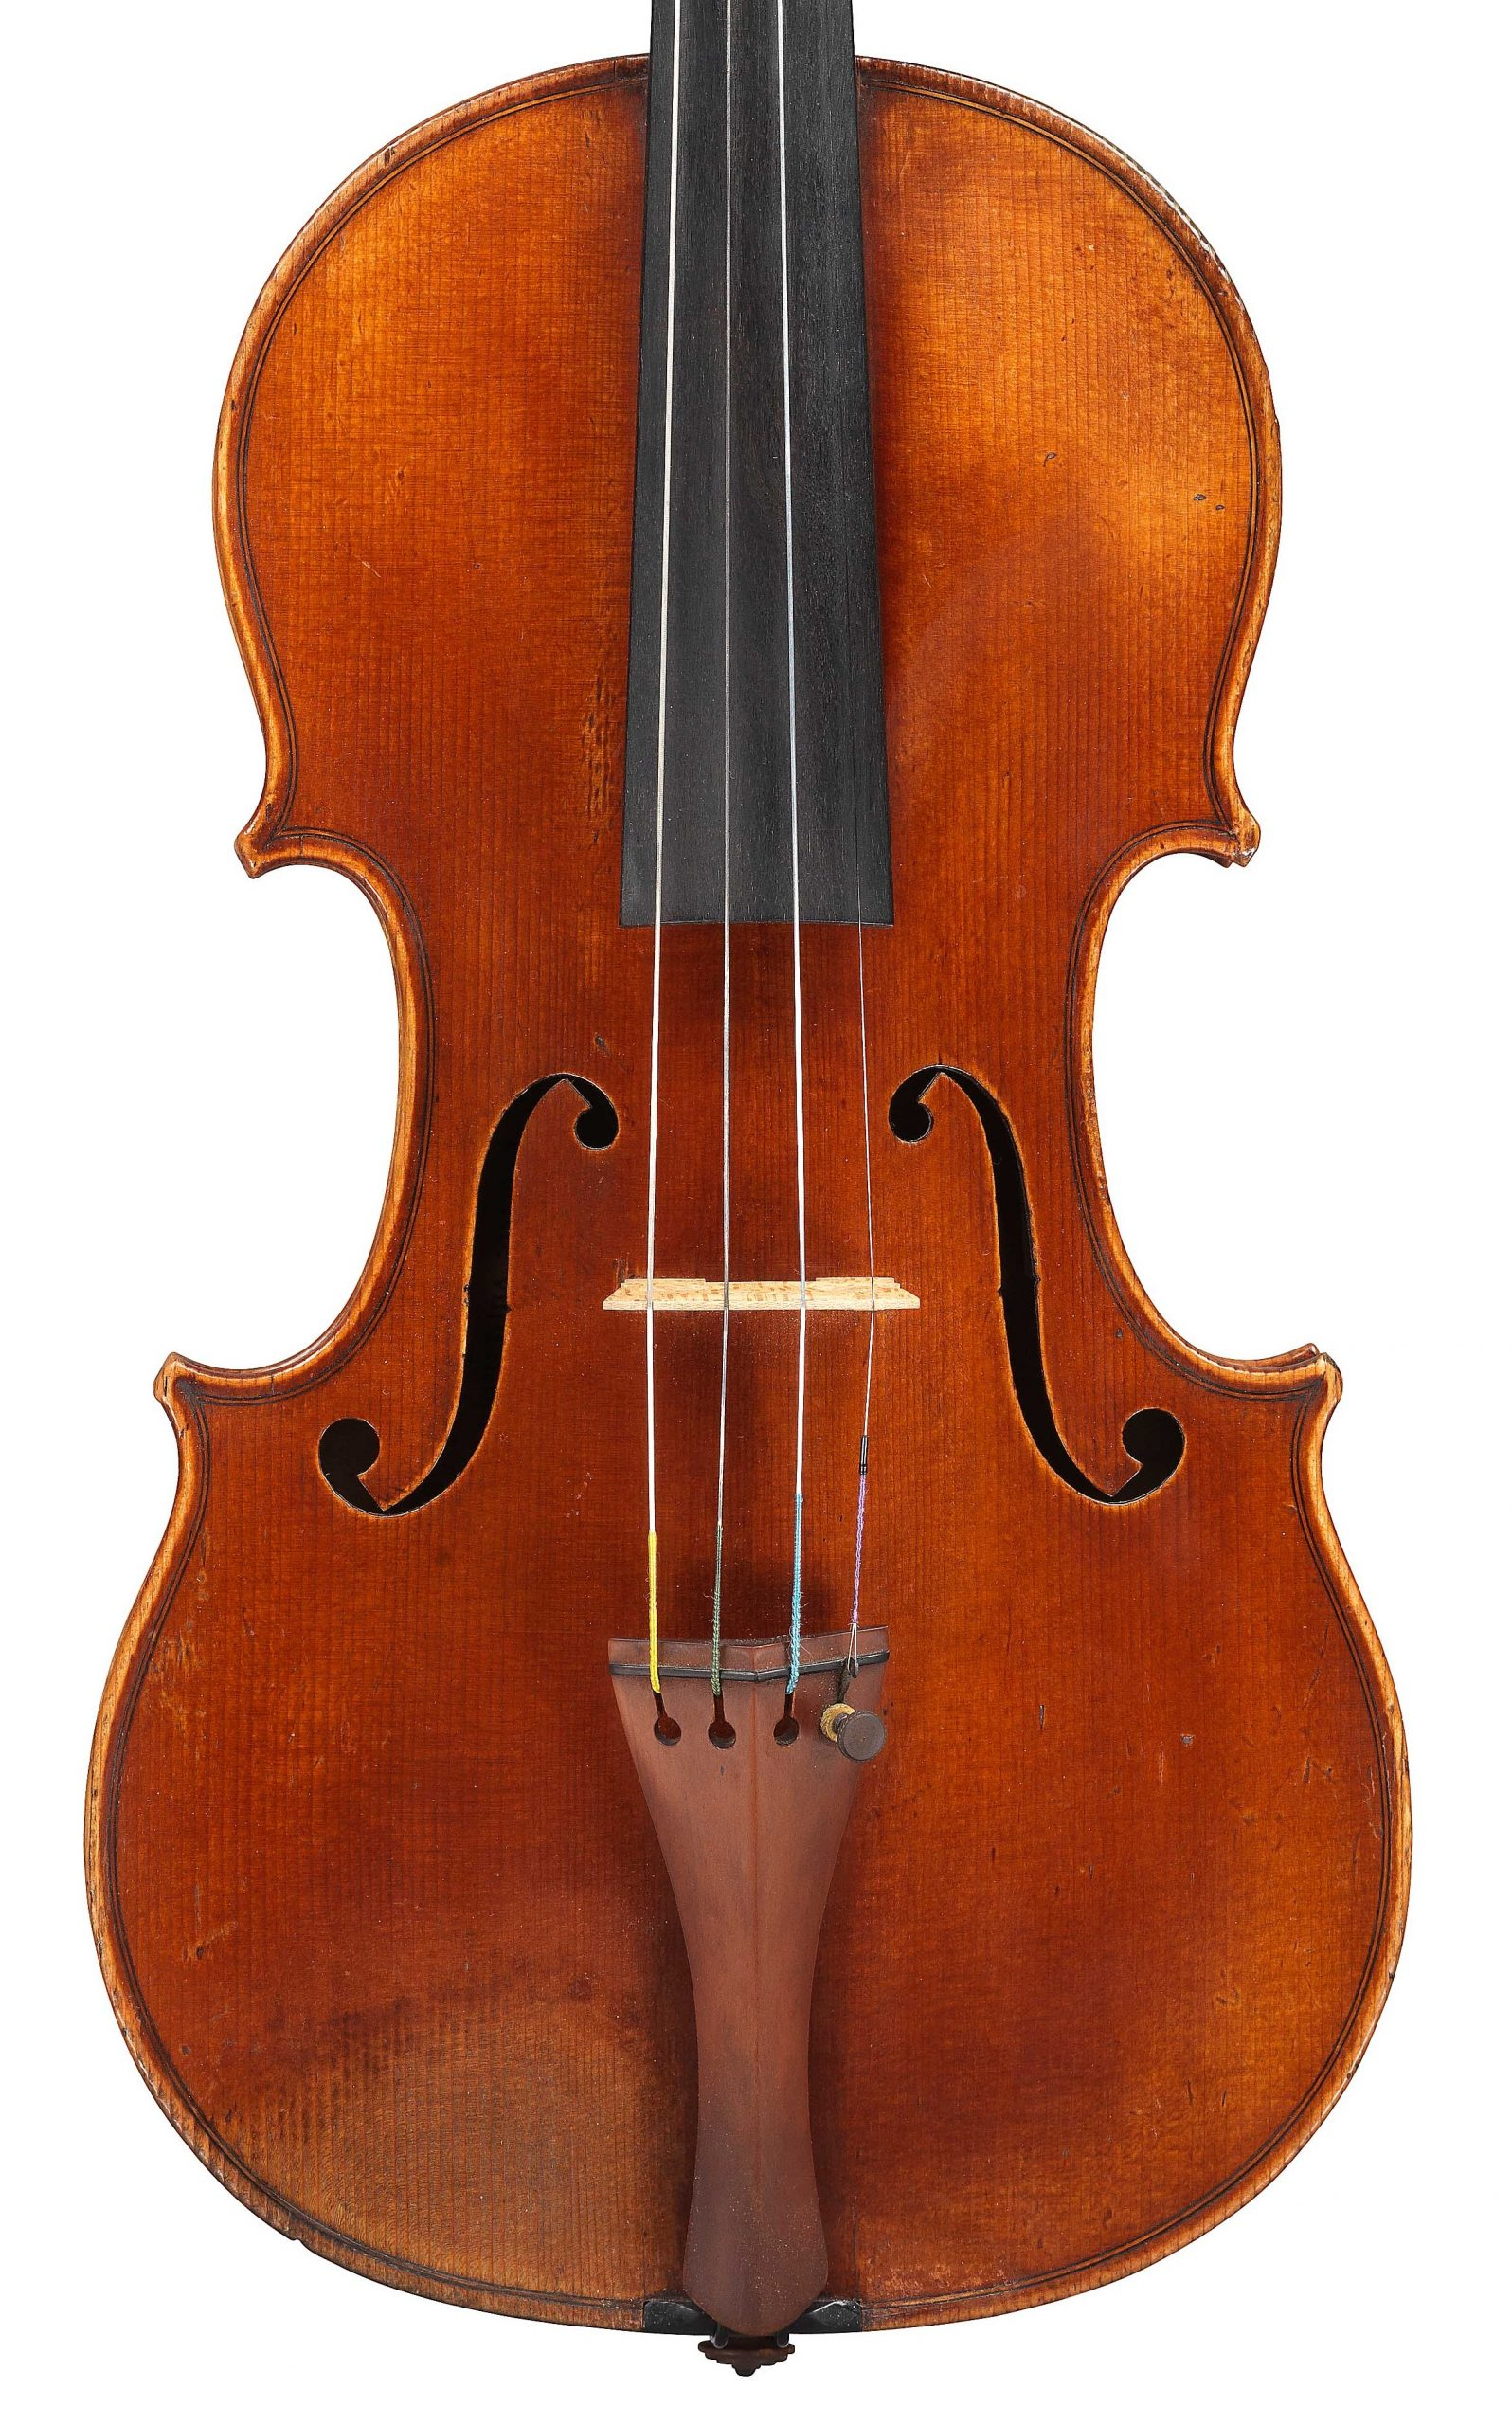 Front of violin by JB Vuillaume, ex-Sin, dated 1863, exhibited by Ingles & Hayday at Sotheby's in 2012